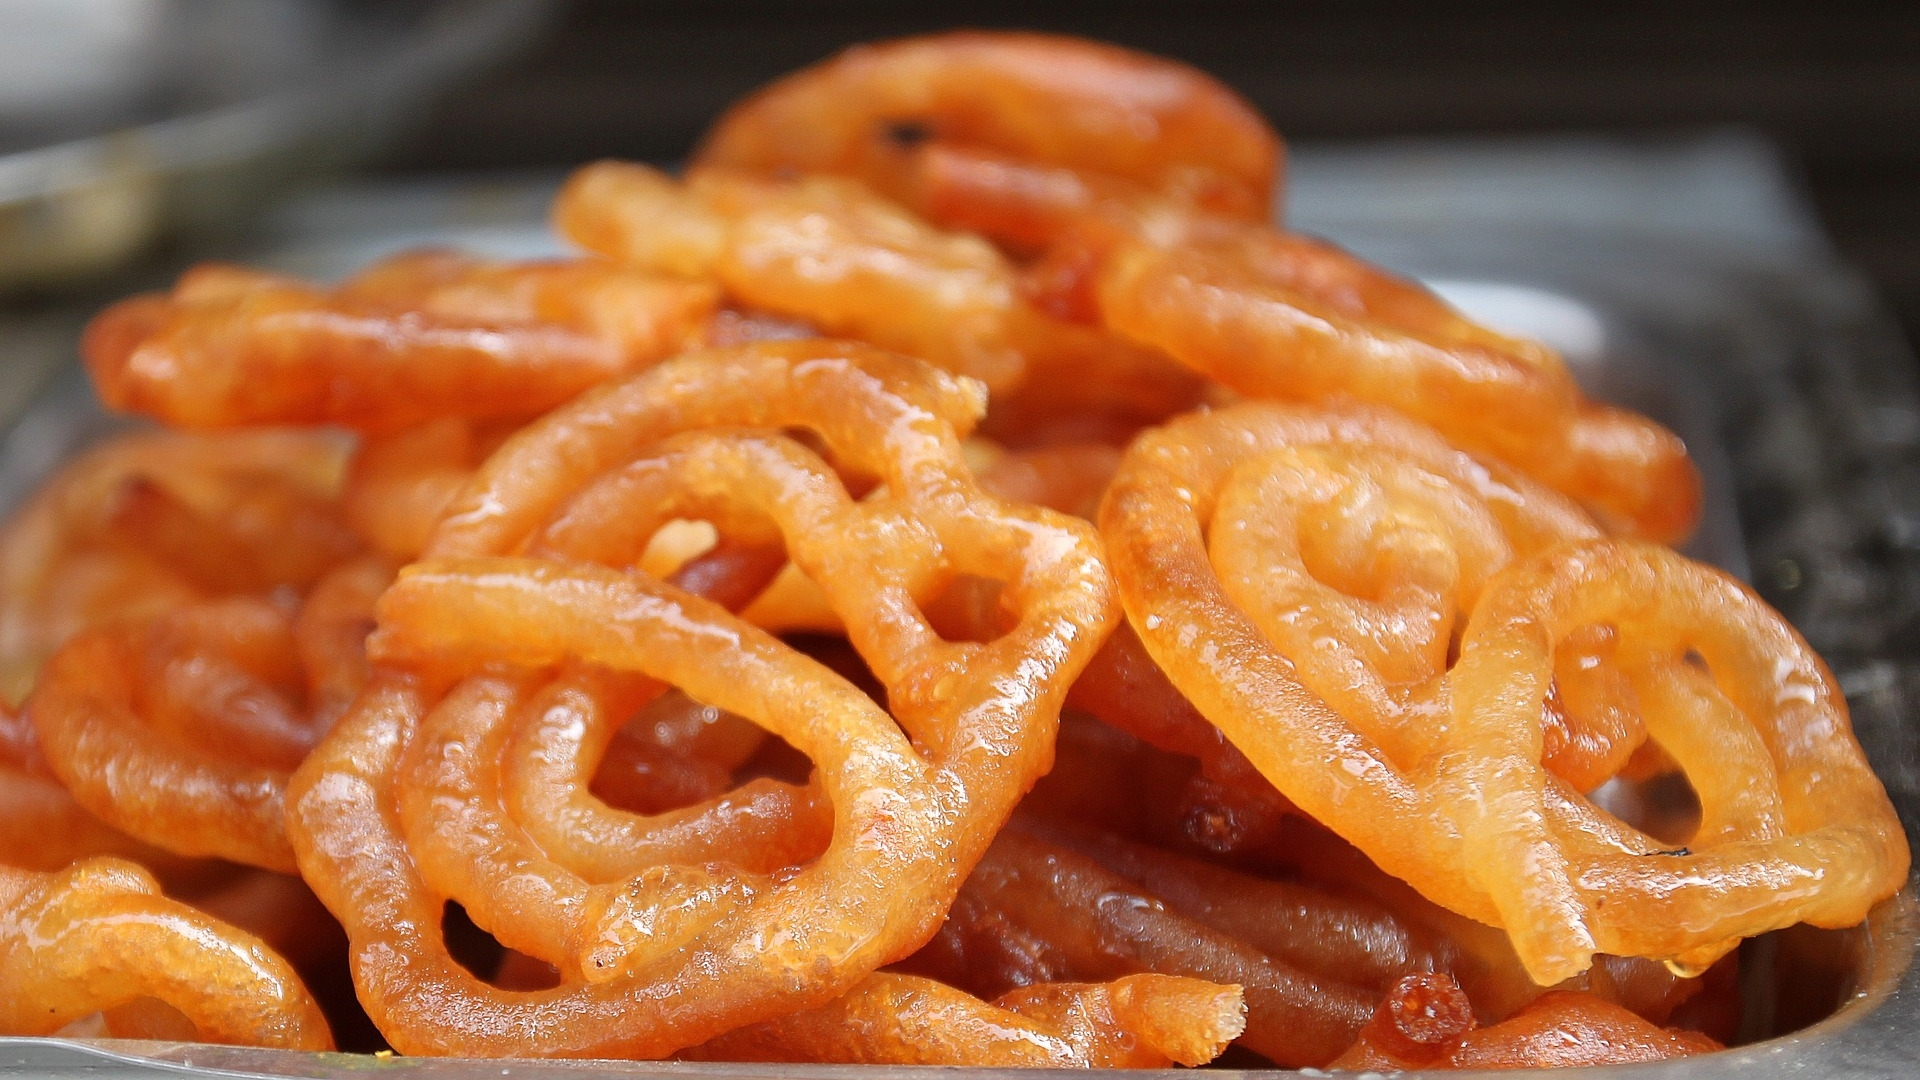 confectionery,sugariness,sweets and candies,food,dessert,confection,jalebi,sweet,nutrient,hd